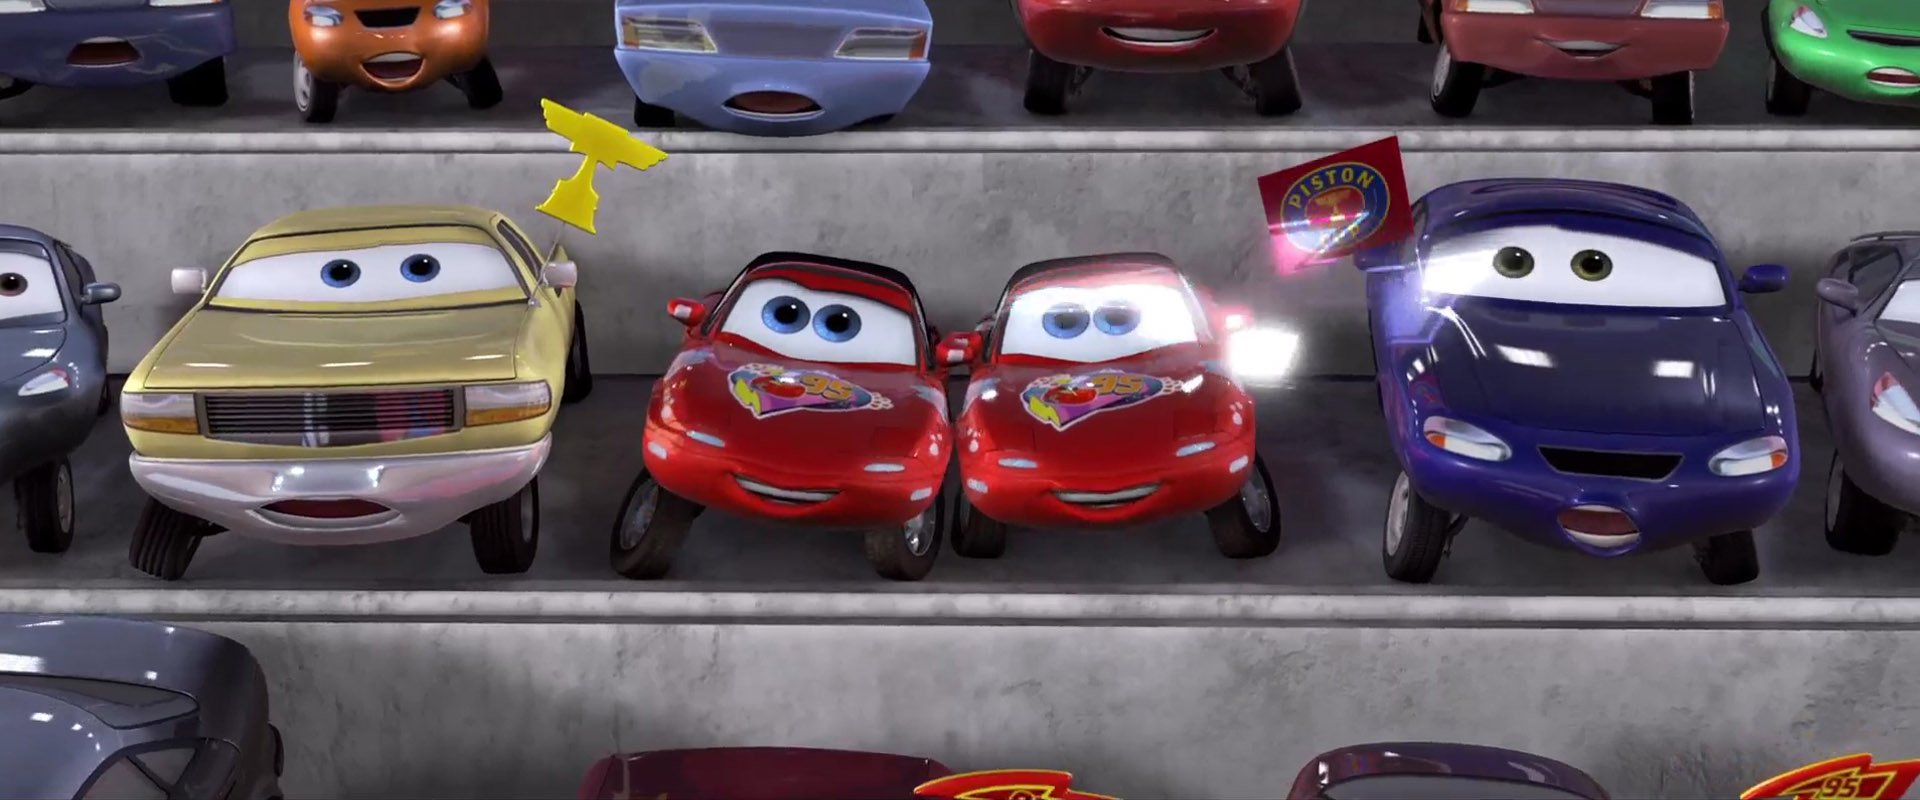 jay-w-personnage-cars-01